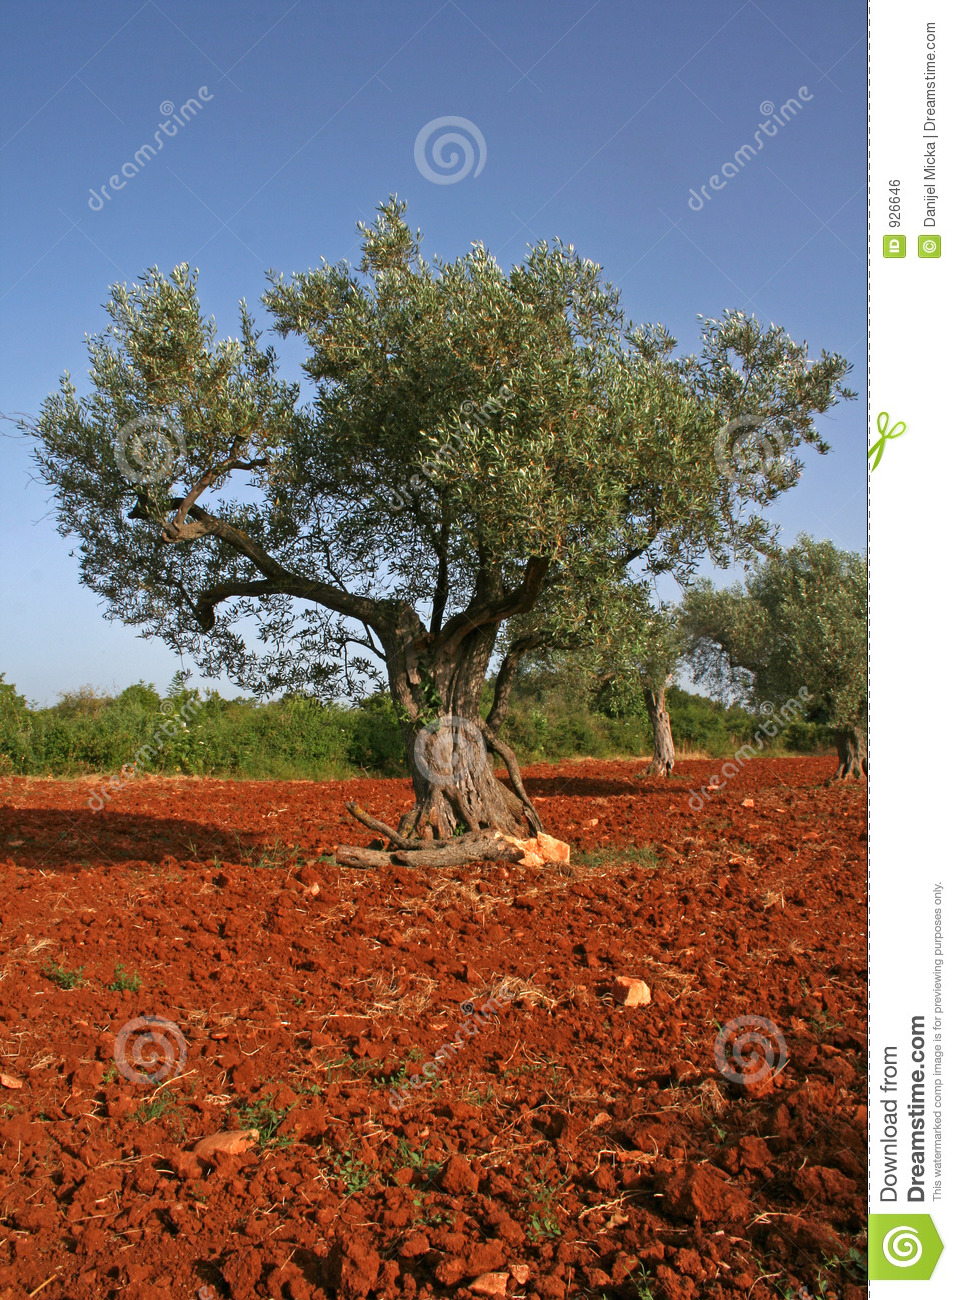 Olive tree on red soil